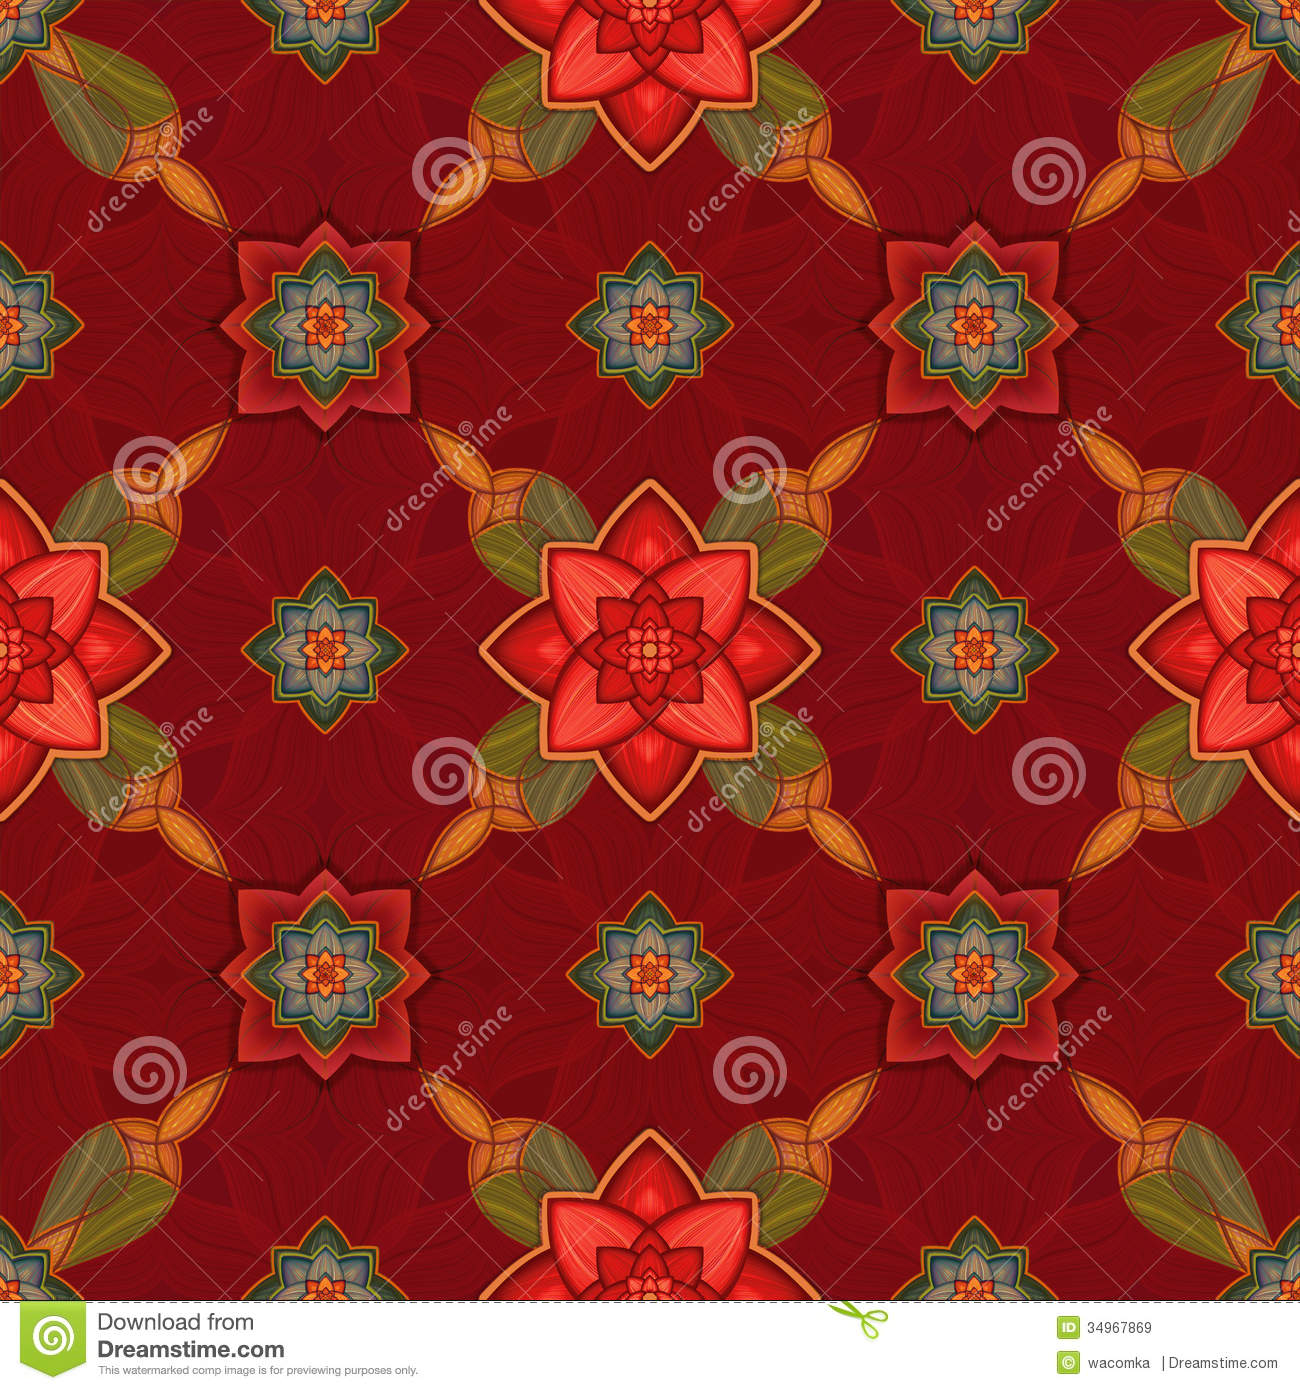 Christmas Gift Wrapper Design.Seamless Pattern Background Christmas Gift Wrapping Paper